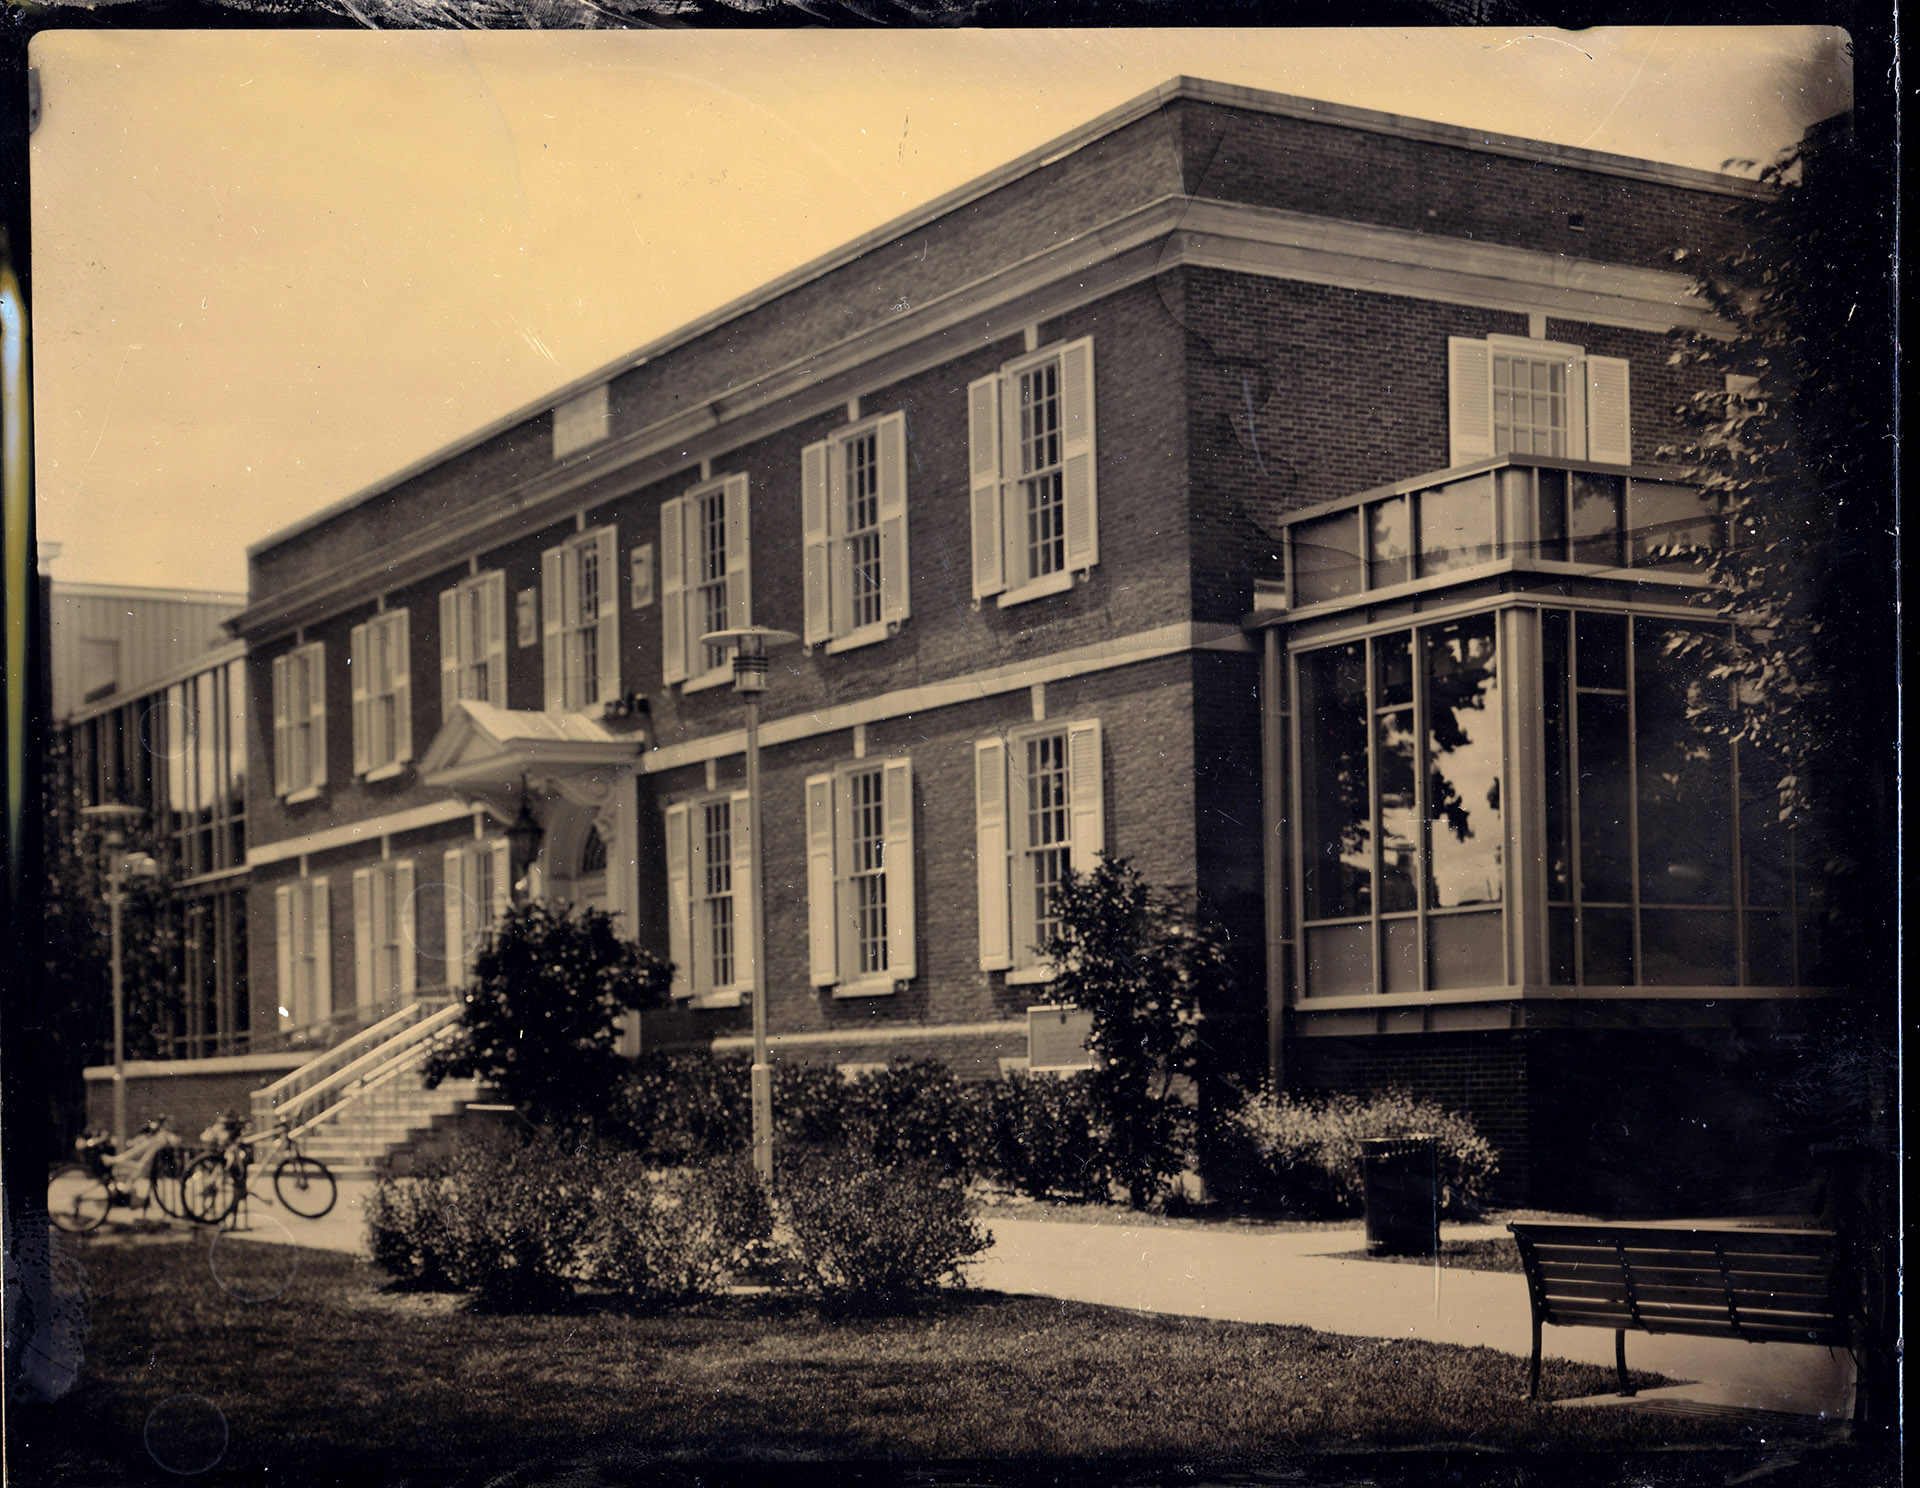 Crandall Library tintype by Wet Plate Photographer Craig Murphy, in Glens Falls, NY.